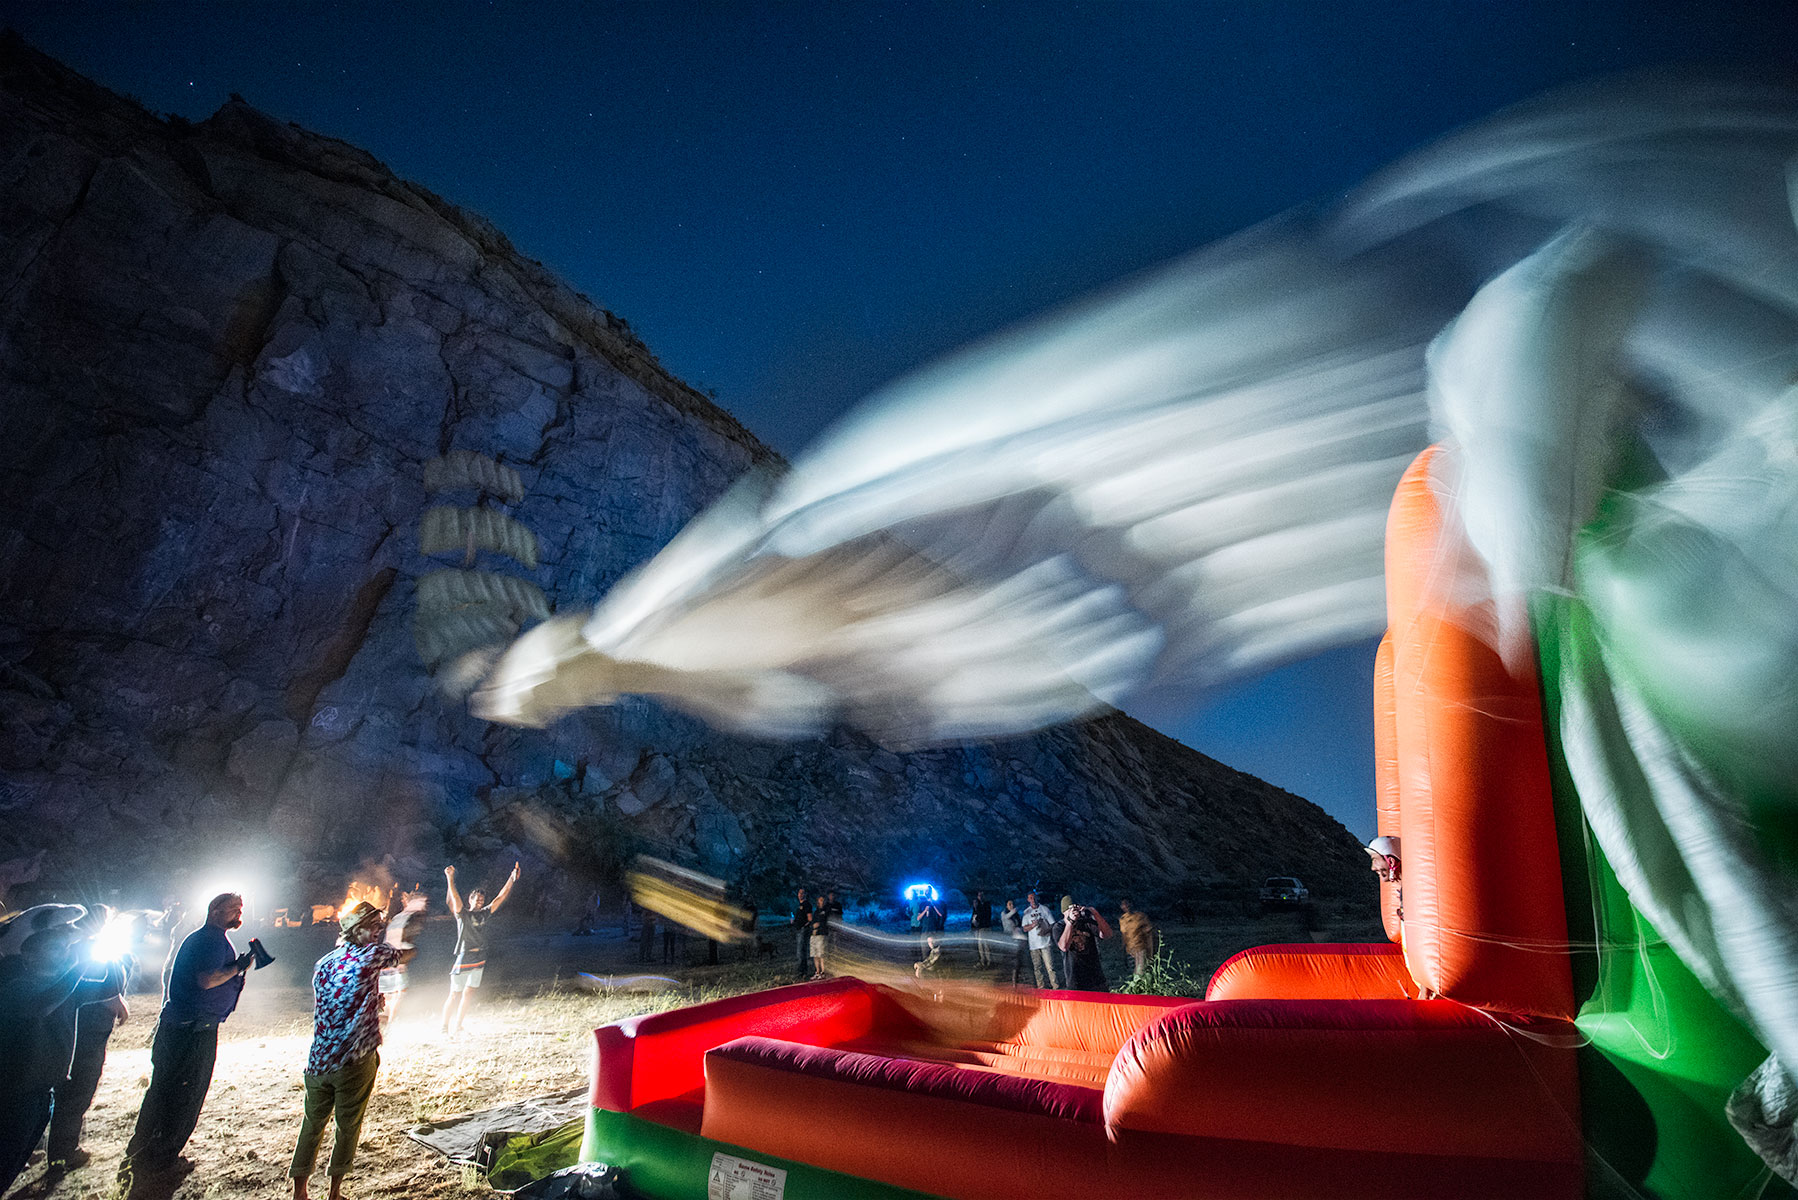 austin-trigg-wing-suit-base-jump-fly-southern-california-composite-night-yosemite-lifestyle-california-adventure-thrill-seeking-bouncy-house.jpg